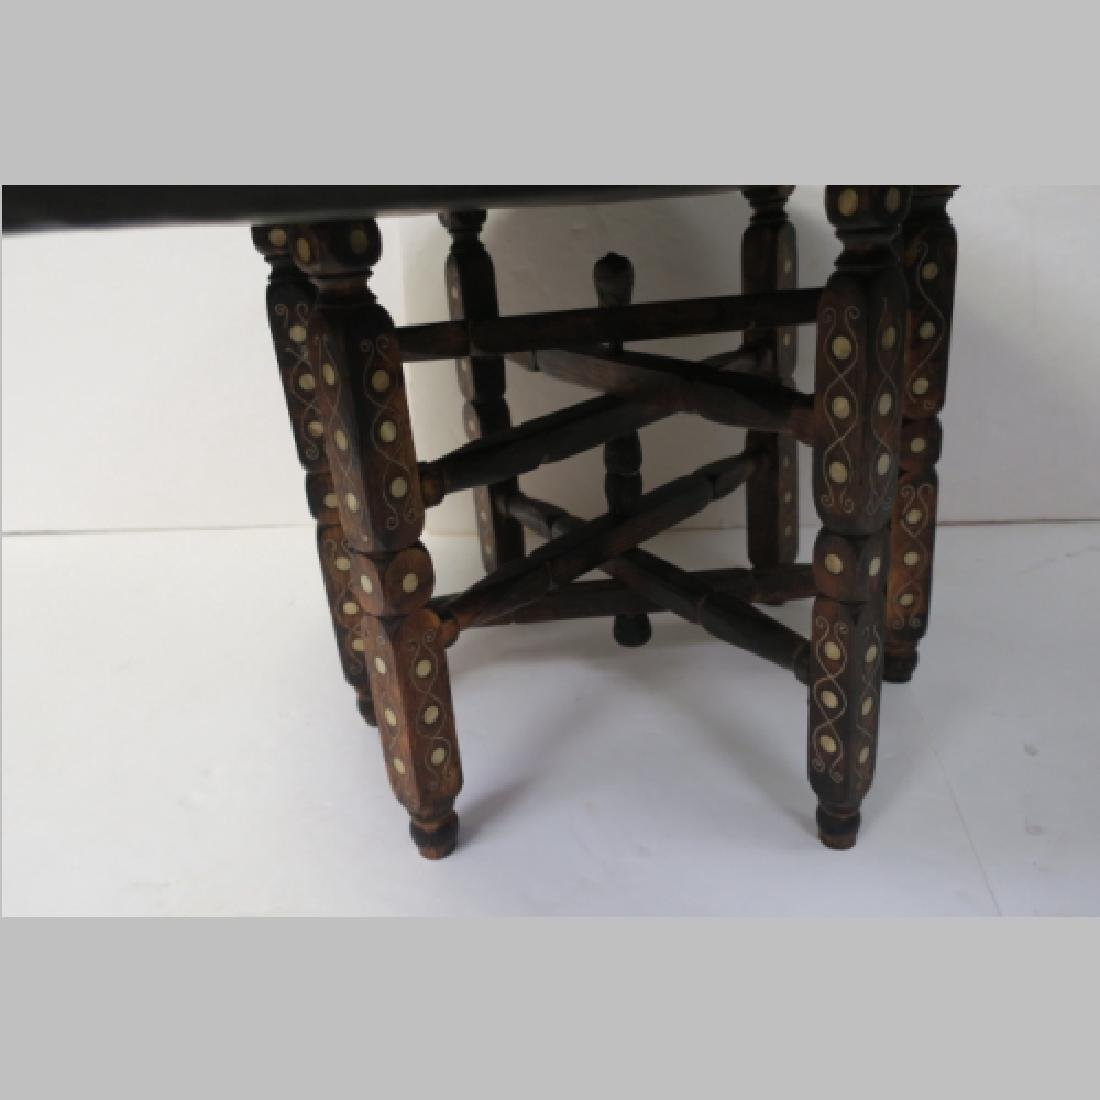 Round Metal East Asian Table with Folding Legs: - 3